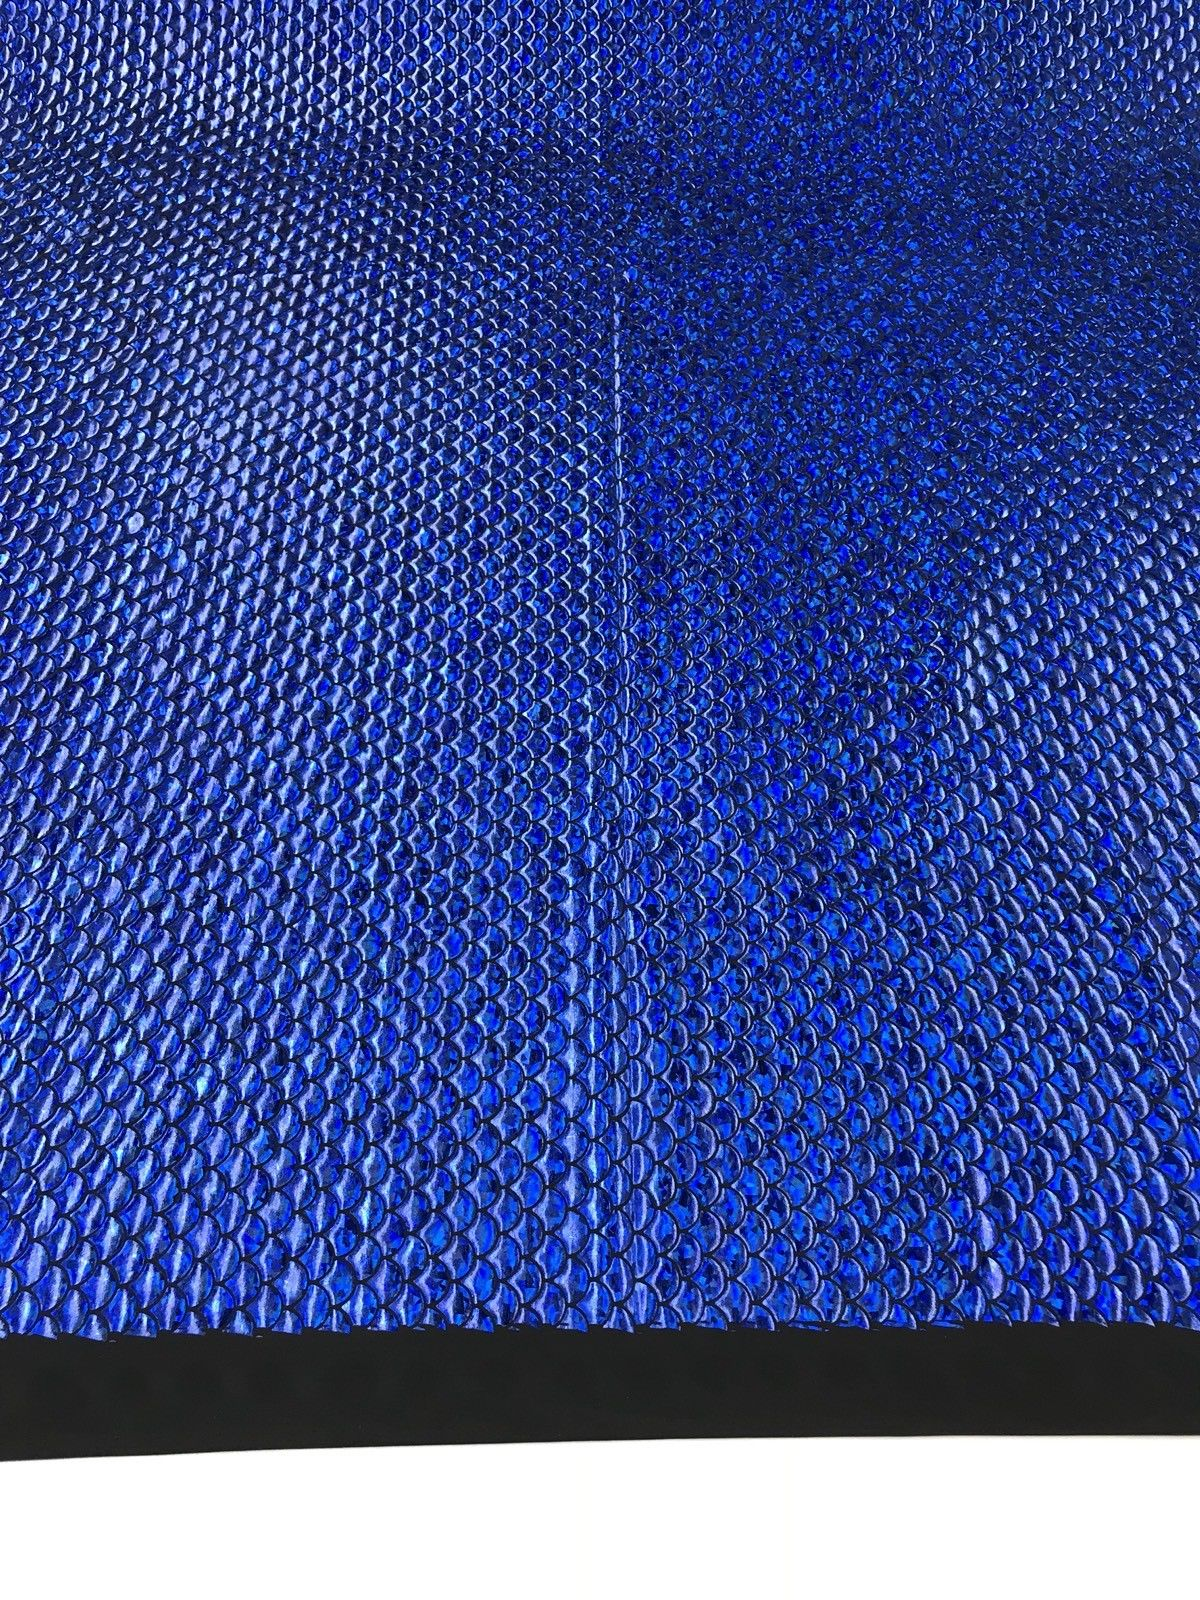 Mermaid Fabric Fish Tail Scale Sparkle Hologram Spandex Royal Blue By The Yard - KINGDOM OF FABRICS